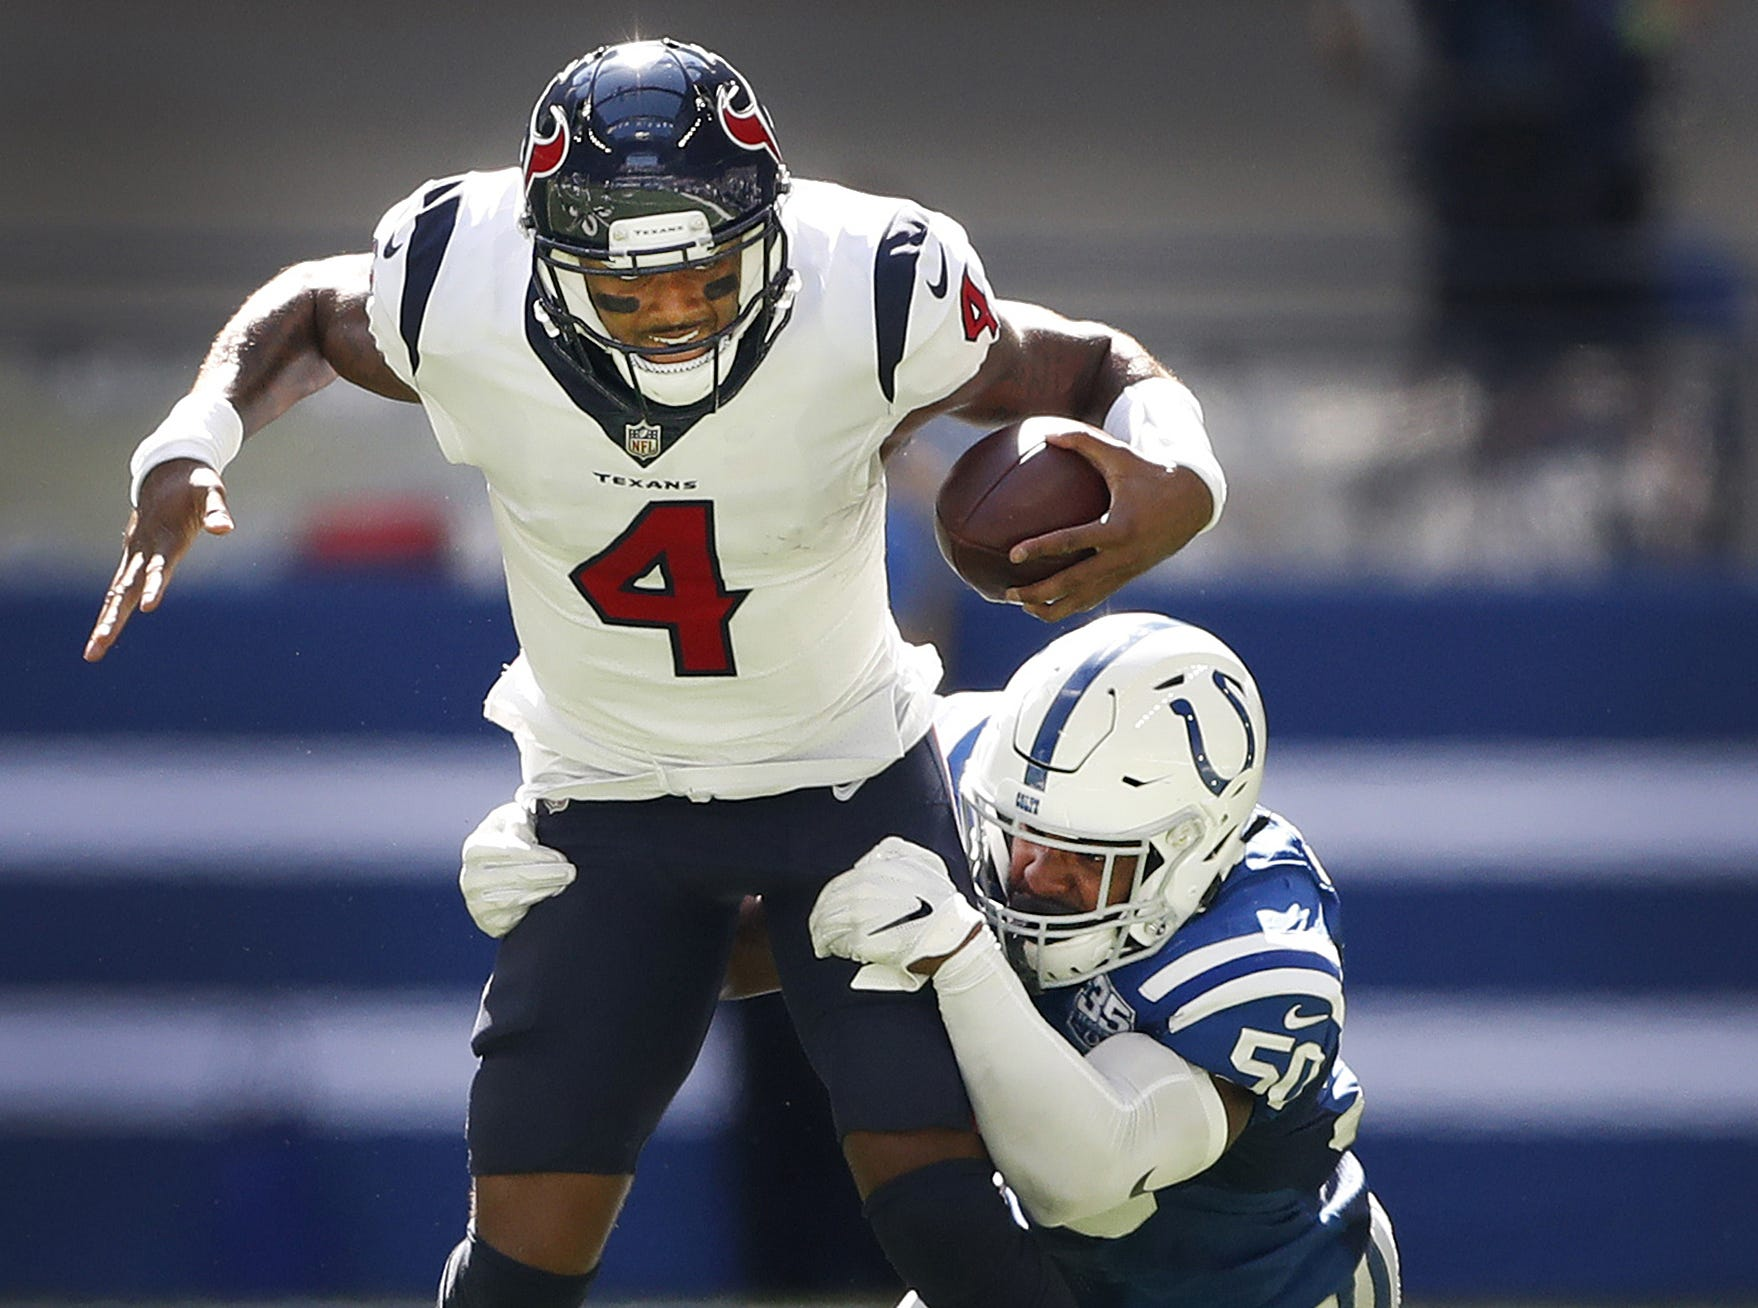 Indianapolis Colts linebacker Anthony Walker (50) sacks Houston Texans quarterback Deshaun Watson (4) in the first half of their game on Sunday, Sept. 30, 2018.